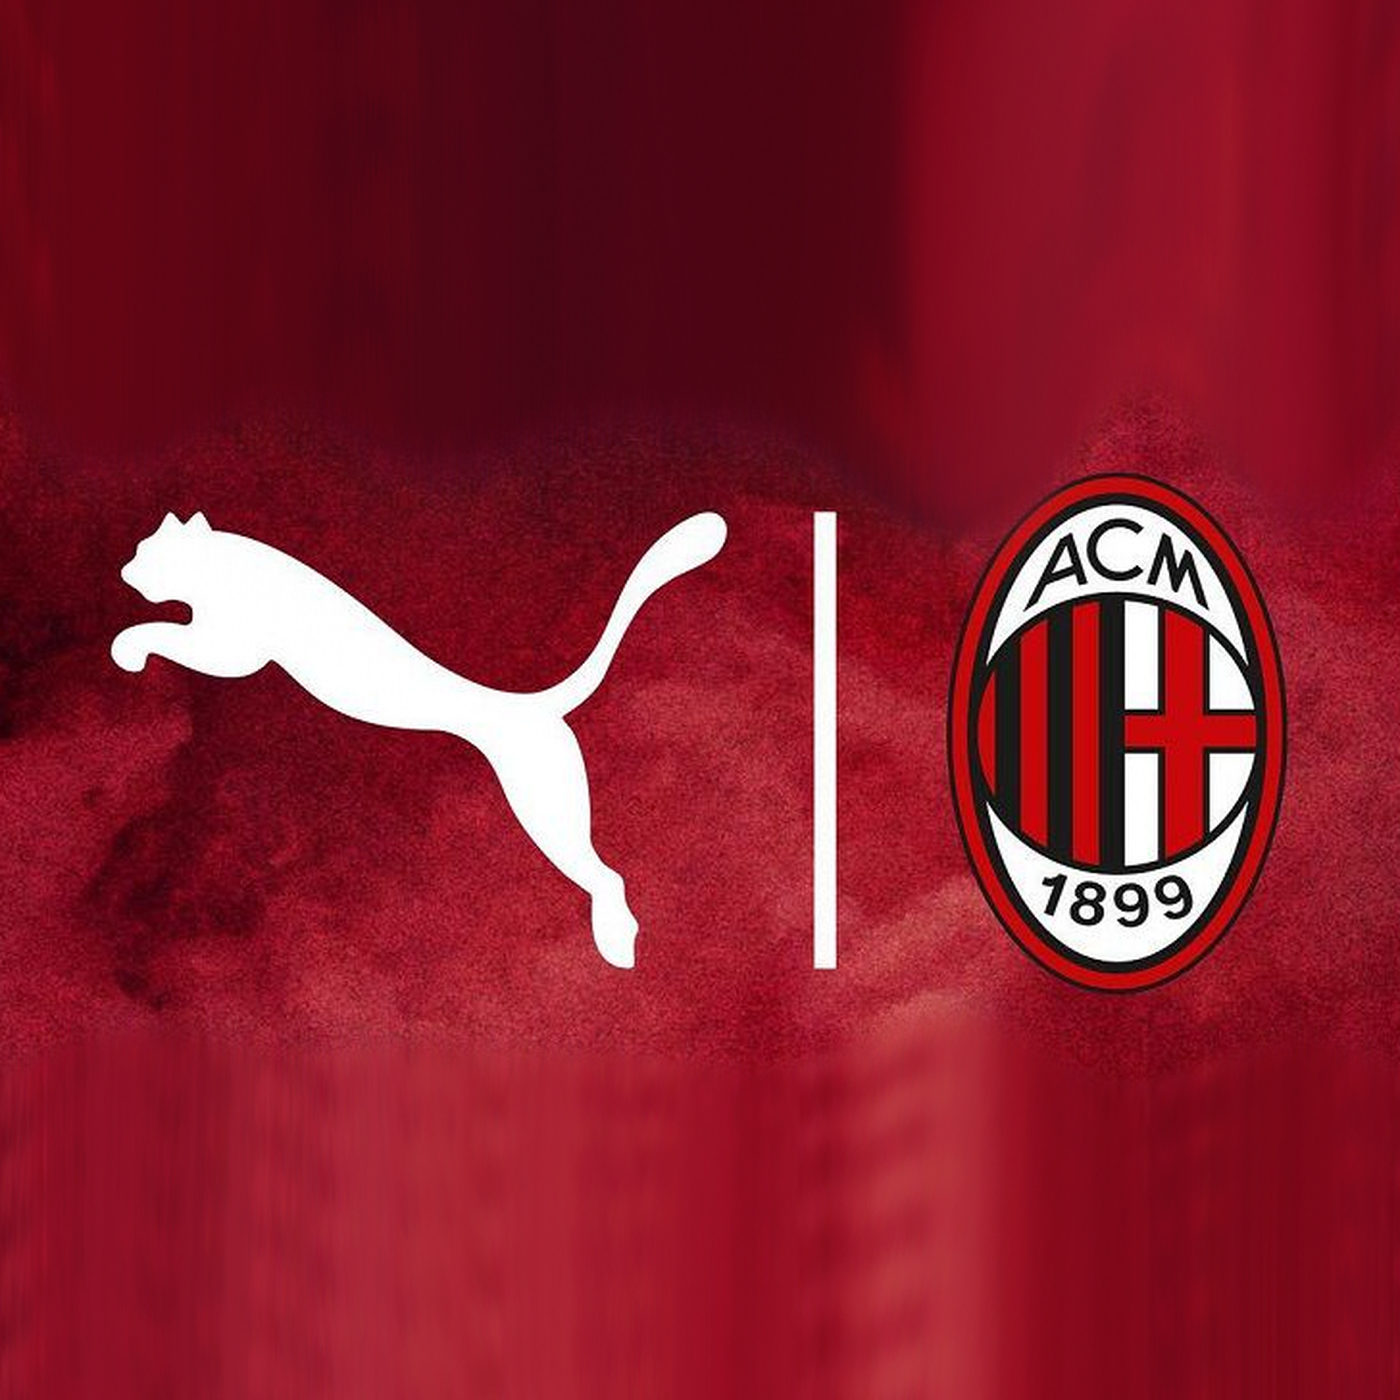 Recepción mediodía Prefijo  AC Milan Have Second Largest Technical Sponsor Deal In Serie A With Puma -  The AC Milan Offside